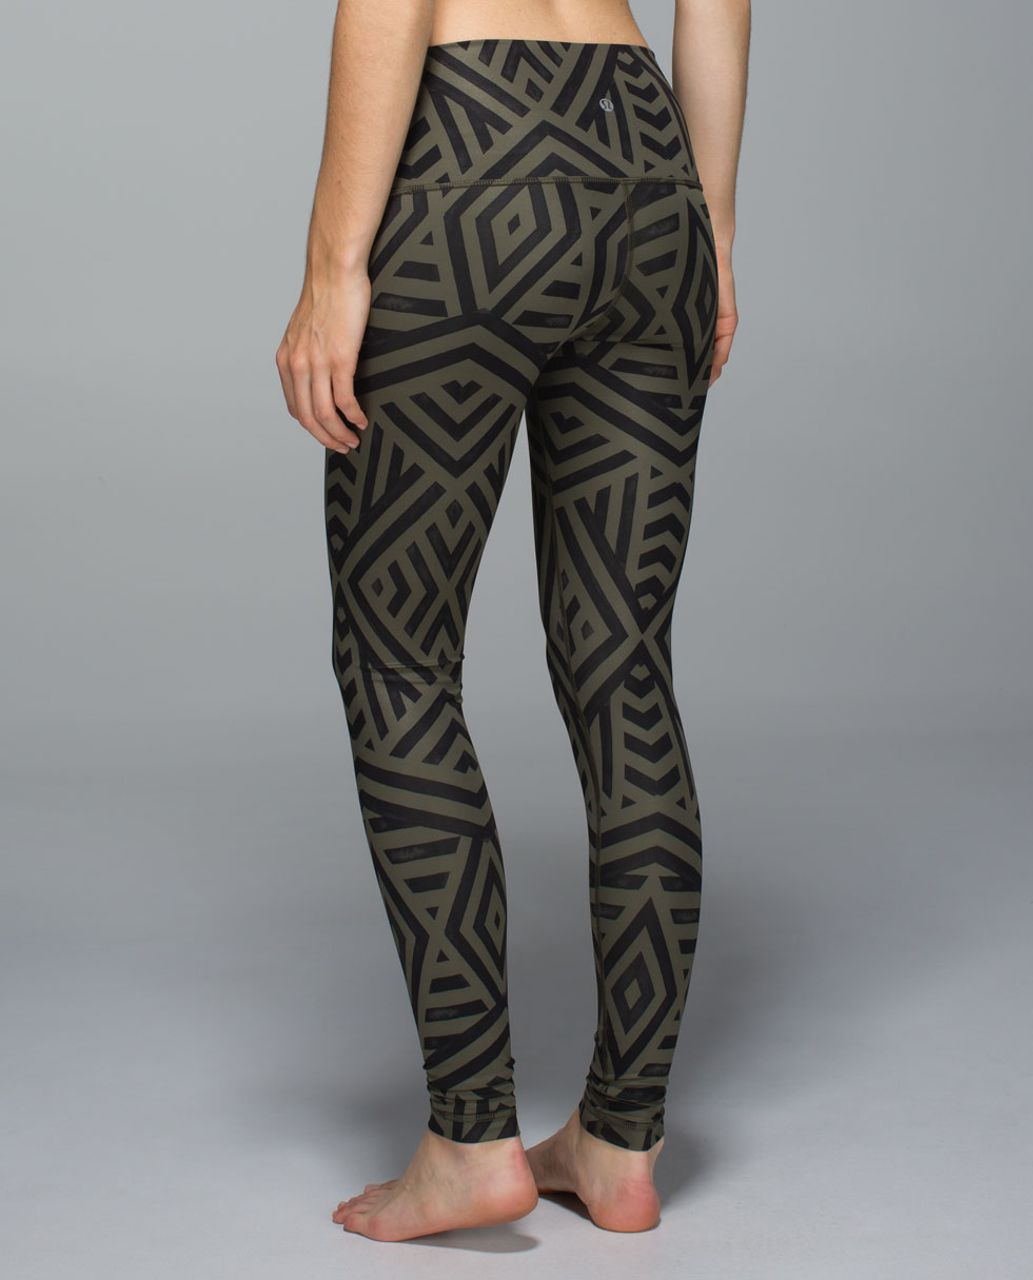 Lululemon Wunder Under Pant *Full-On Luxtreme (Roll Down) - Chevron Shuffle Fatigue Green Black